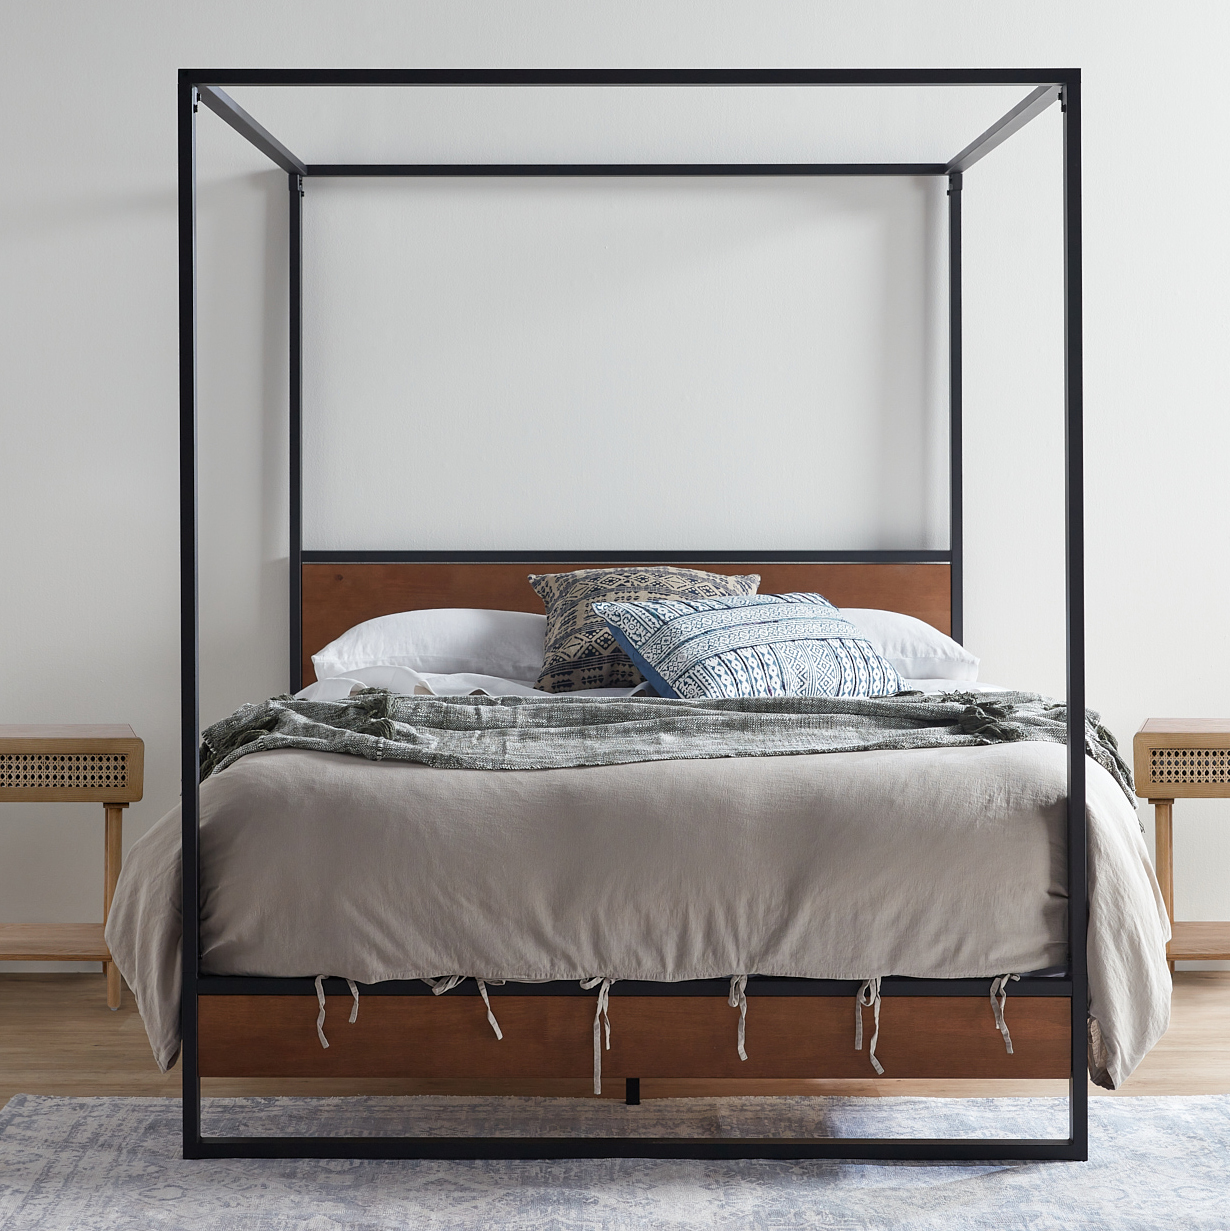 Picture of: Studio Home Houston Timber And Metal Canopy Four Poster Bed Reviews Temple Webster